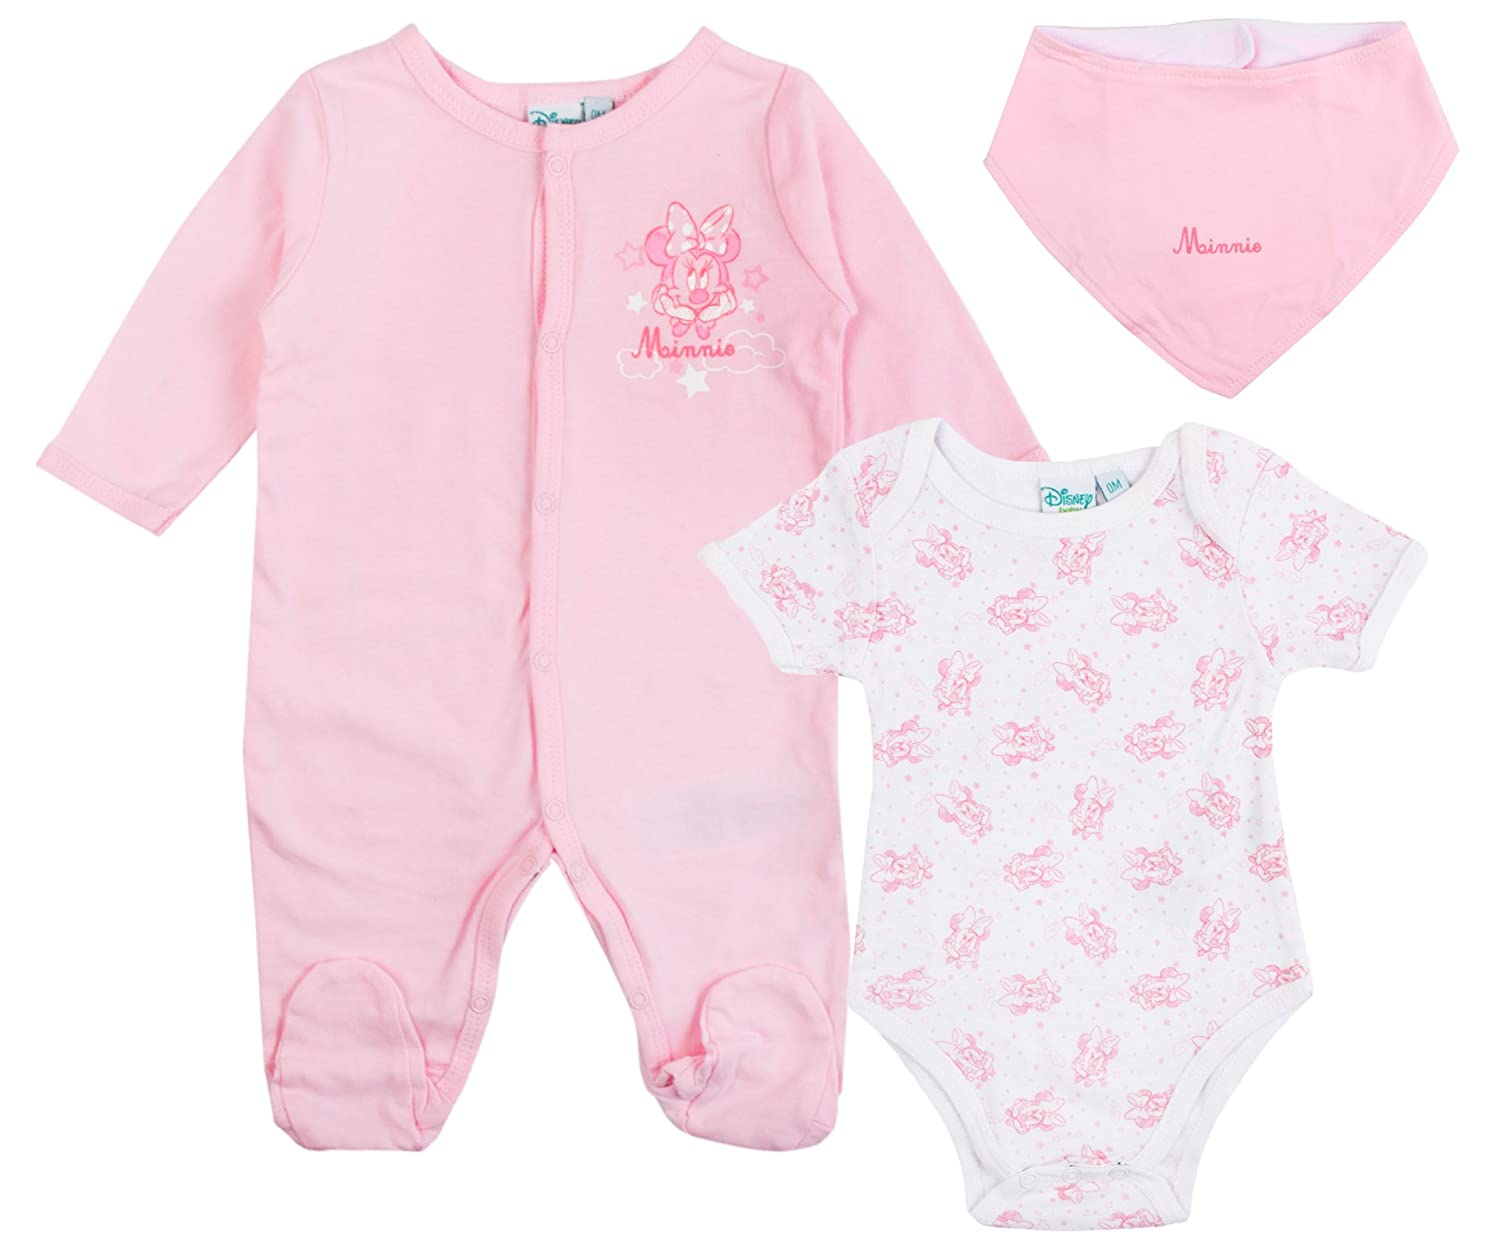 Disney Minnie Mouse Baby Girls Outfit 3 Piece Set Shoe Directory